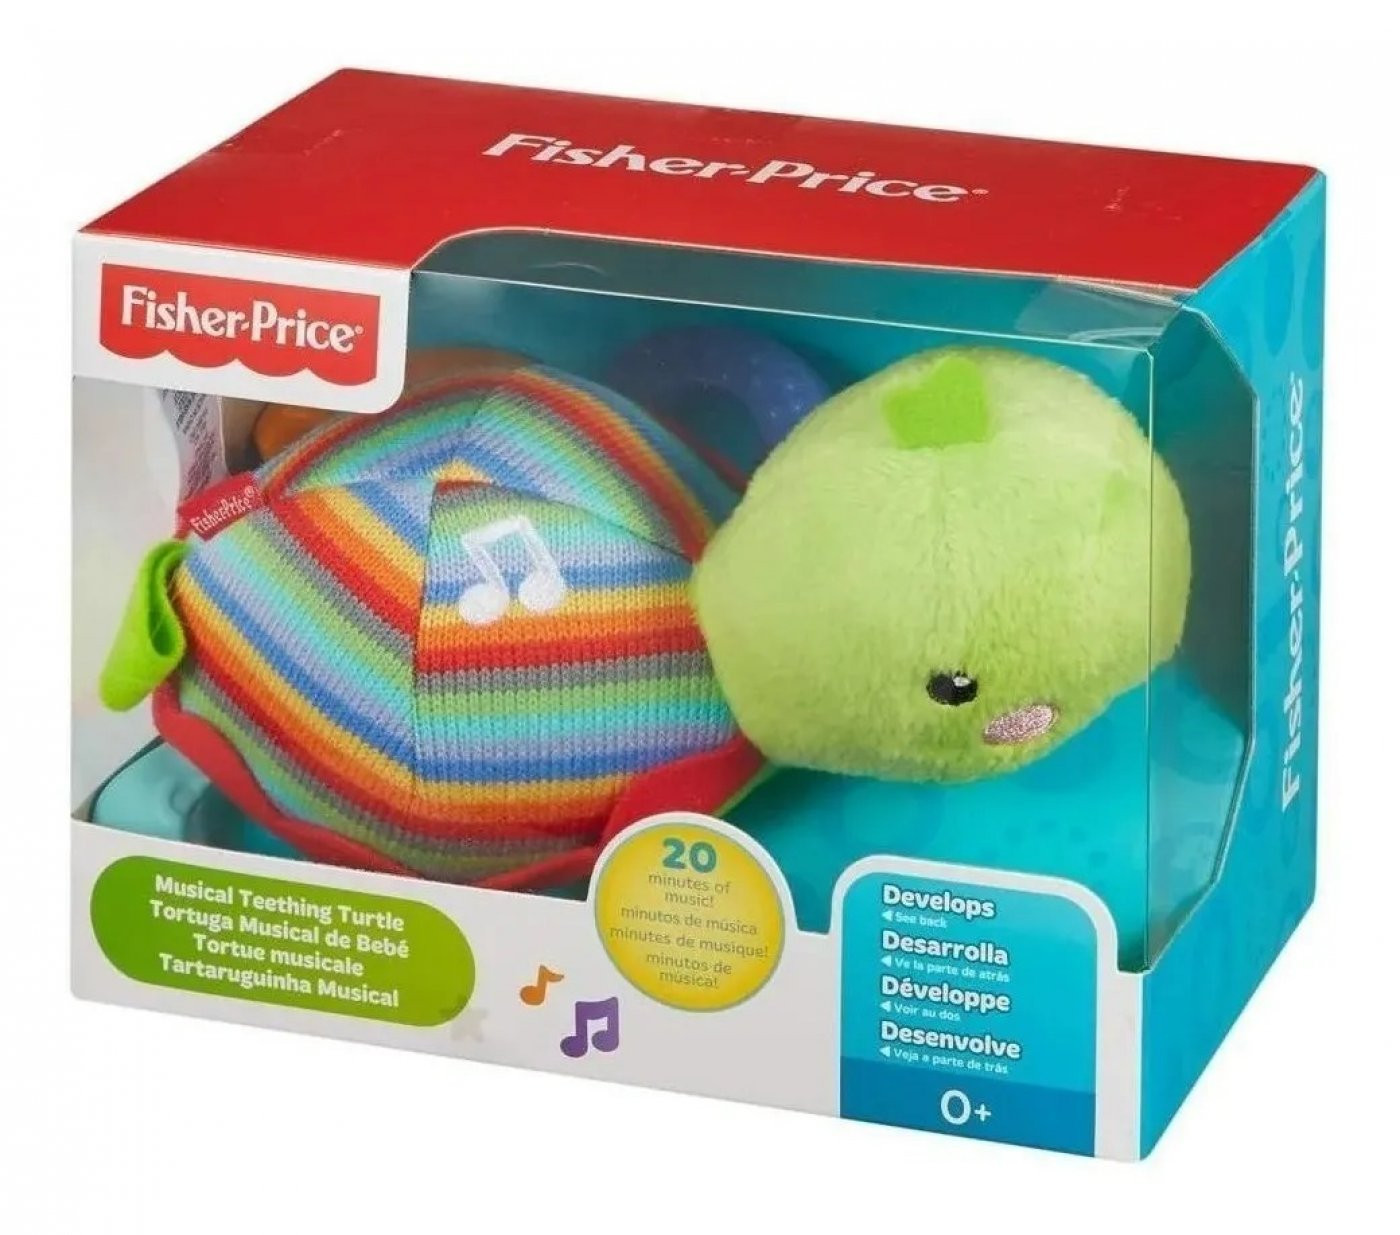 Fisher Price Tortuga Musical De Bebé Peluche